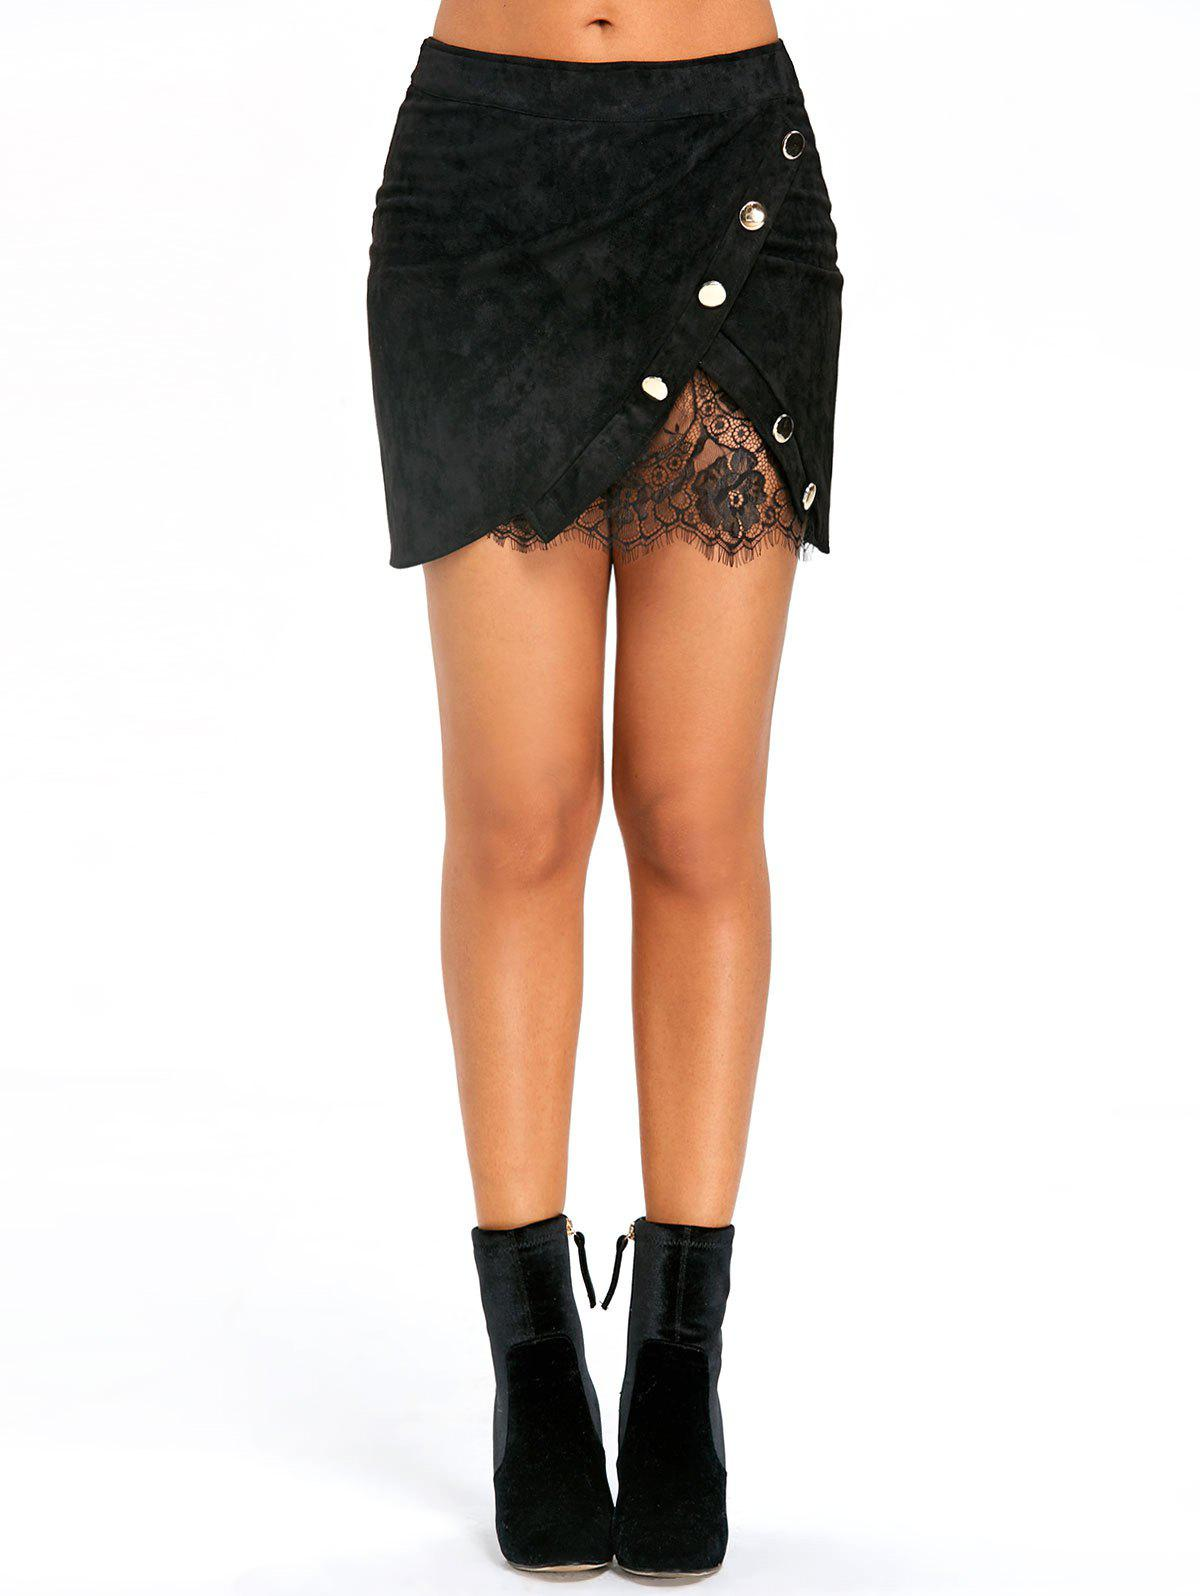 Buttoned Lace Insert Mini Bodycon Skirt - BLACK M